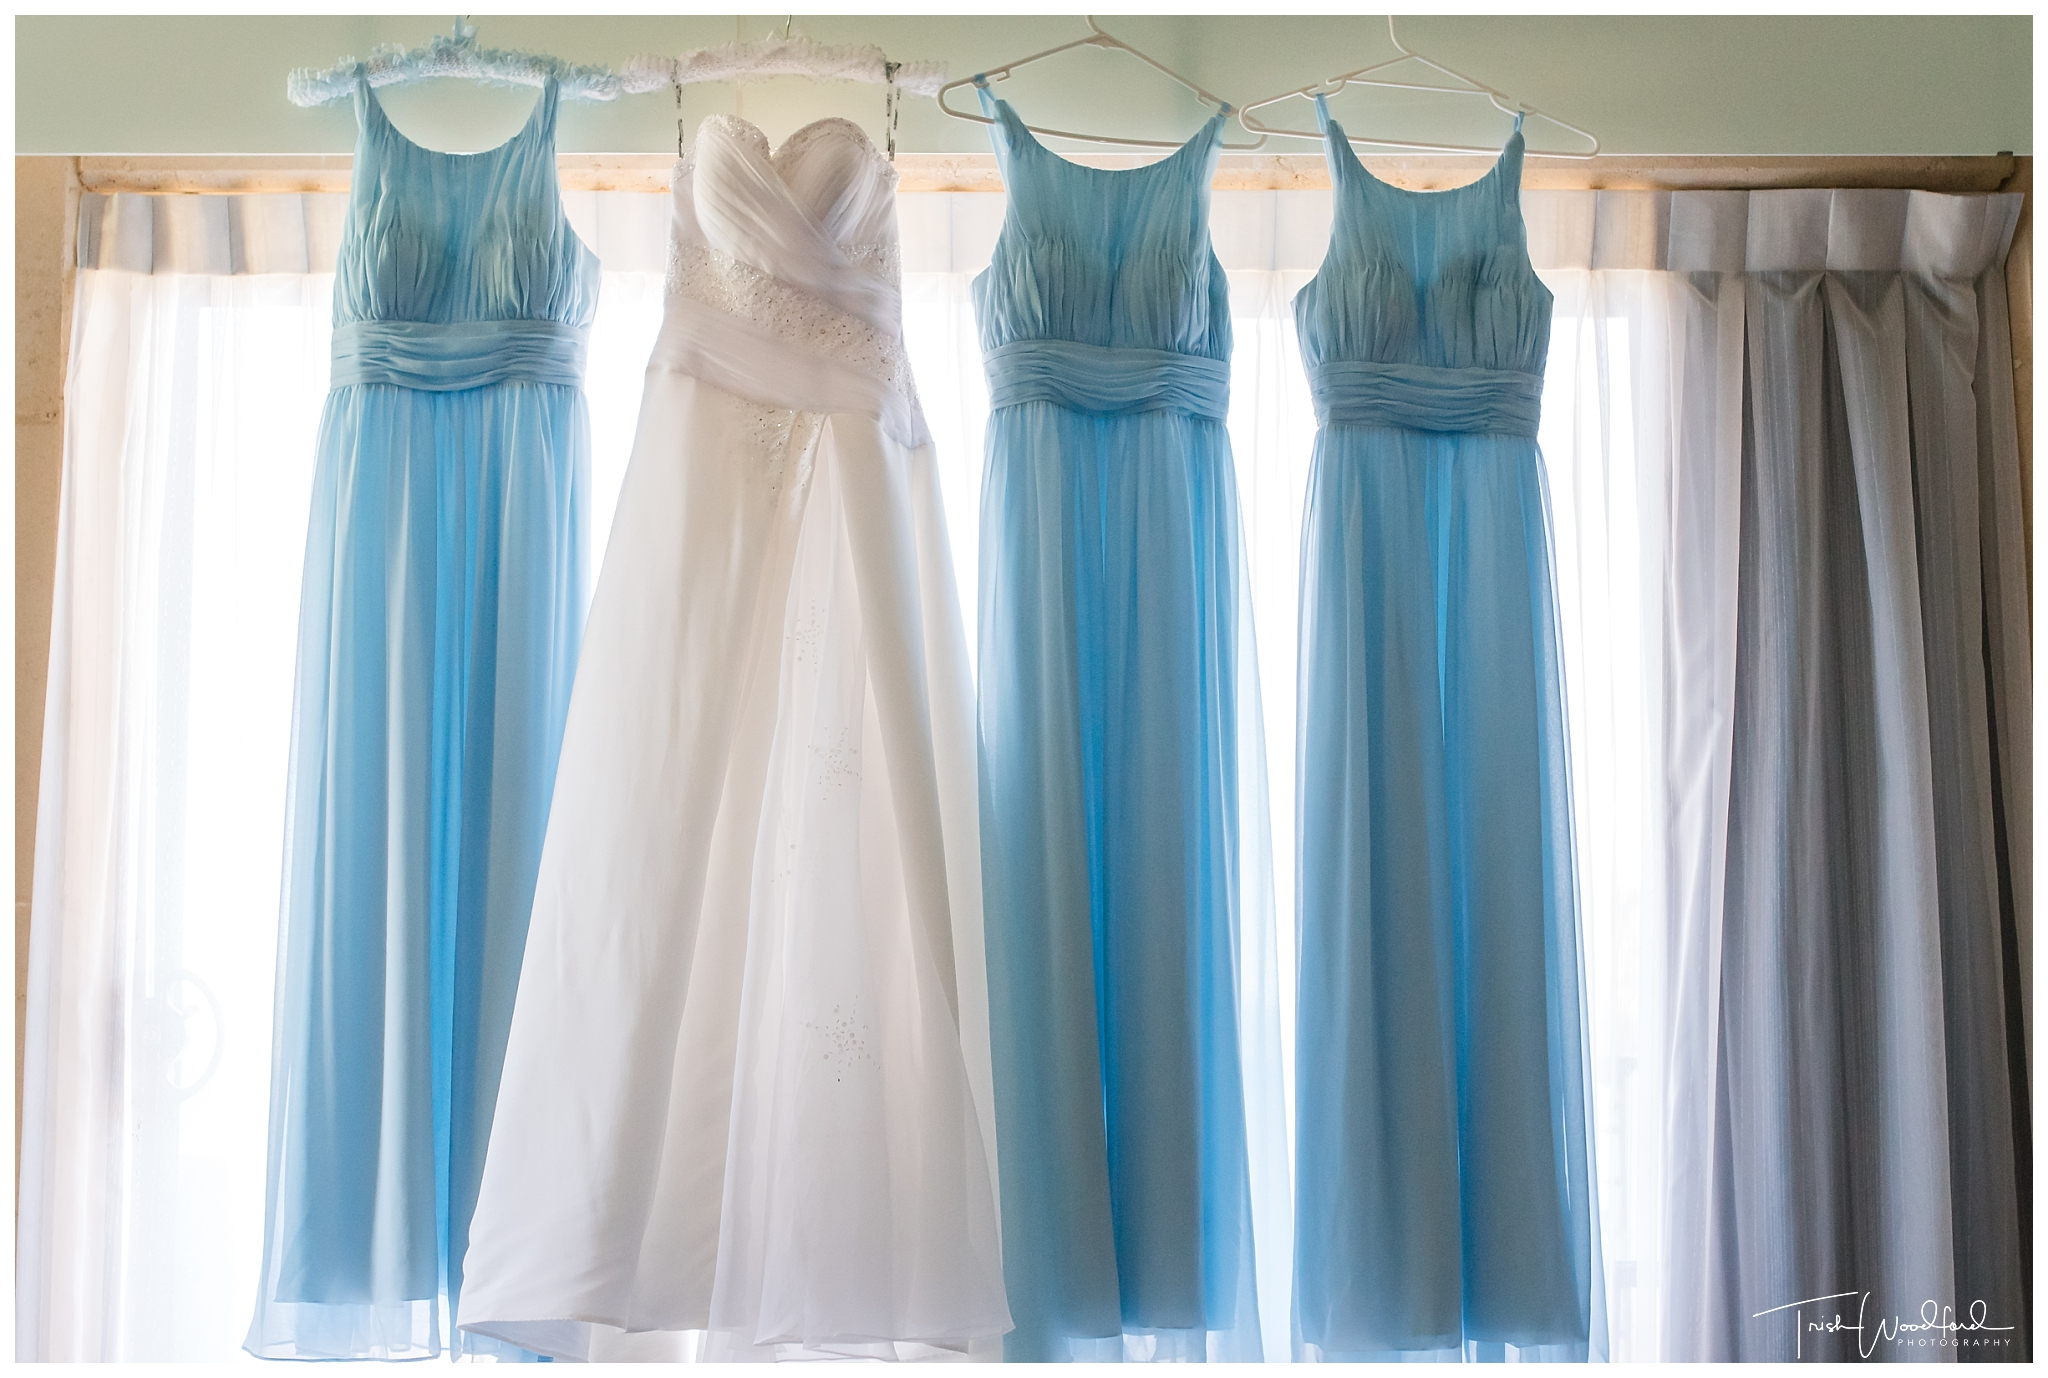 Perth Bride & Bridesmaid Dresses